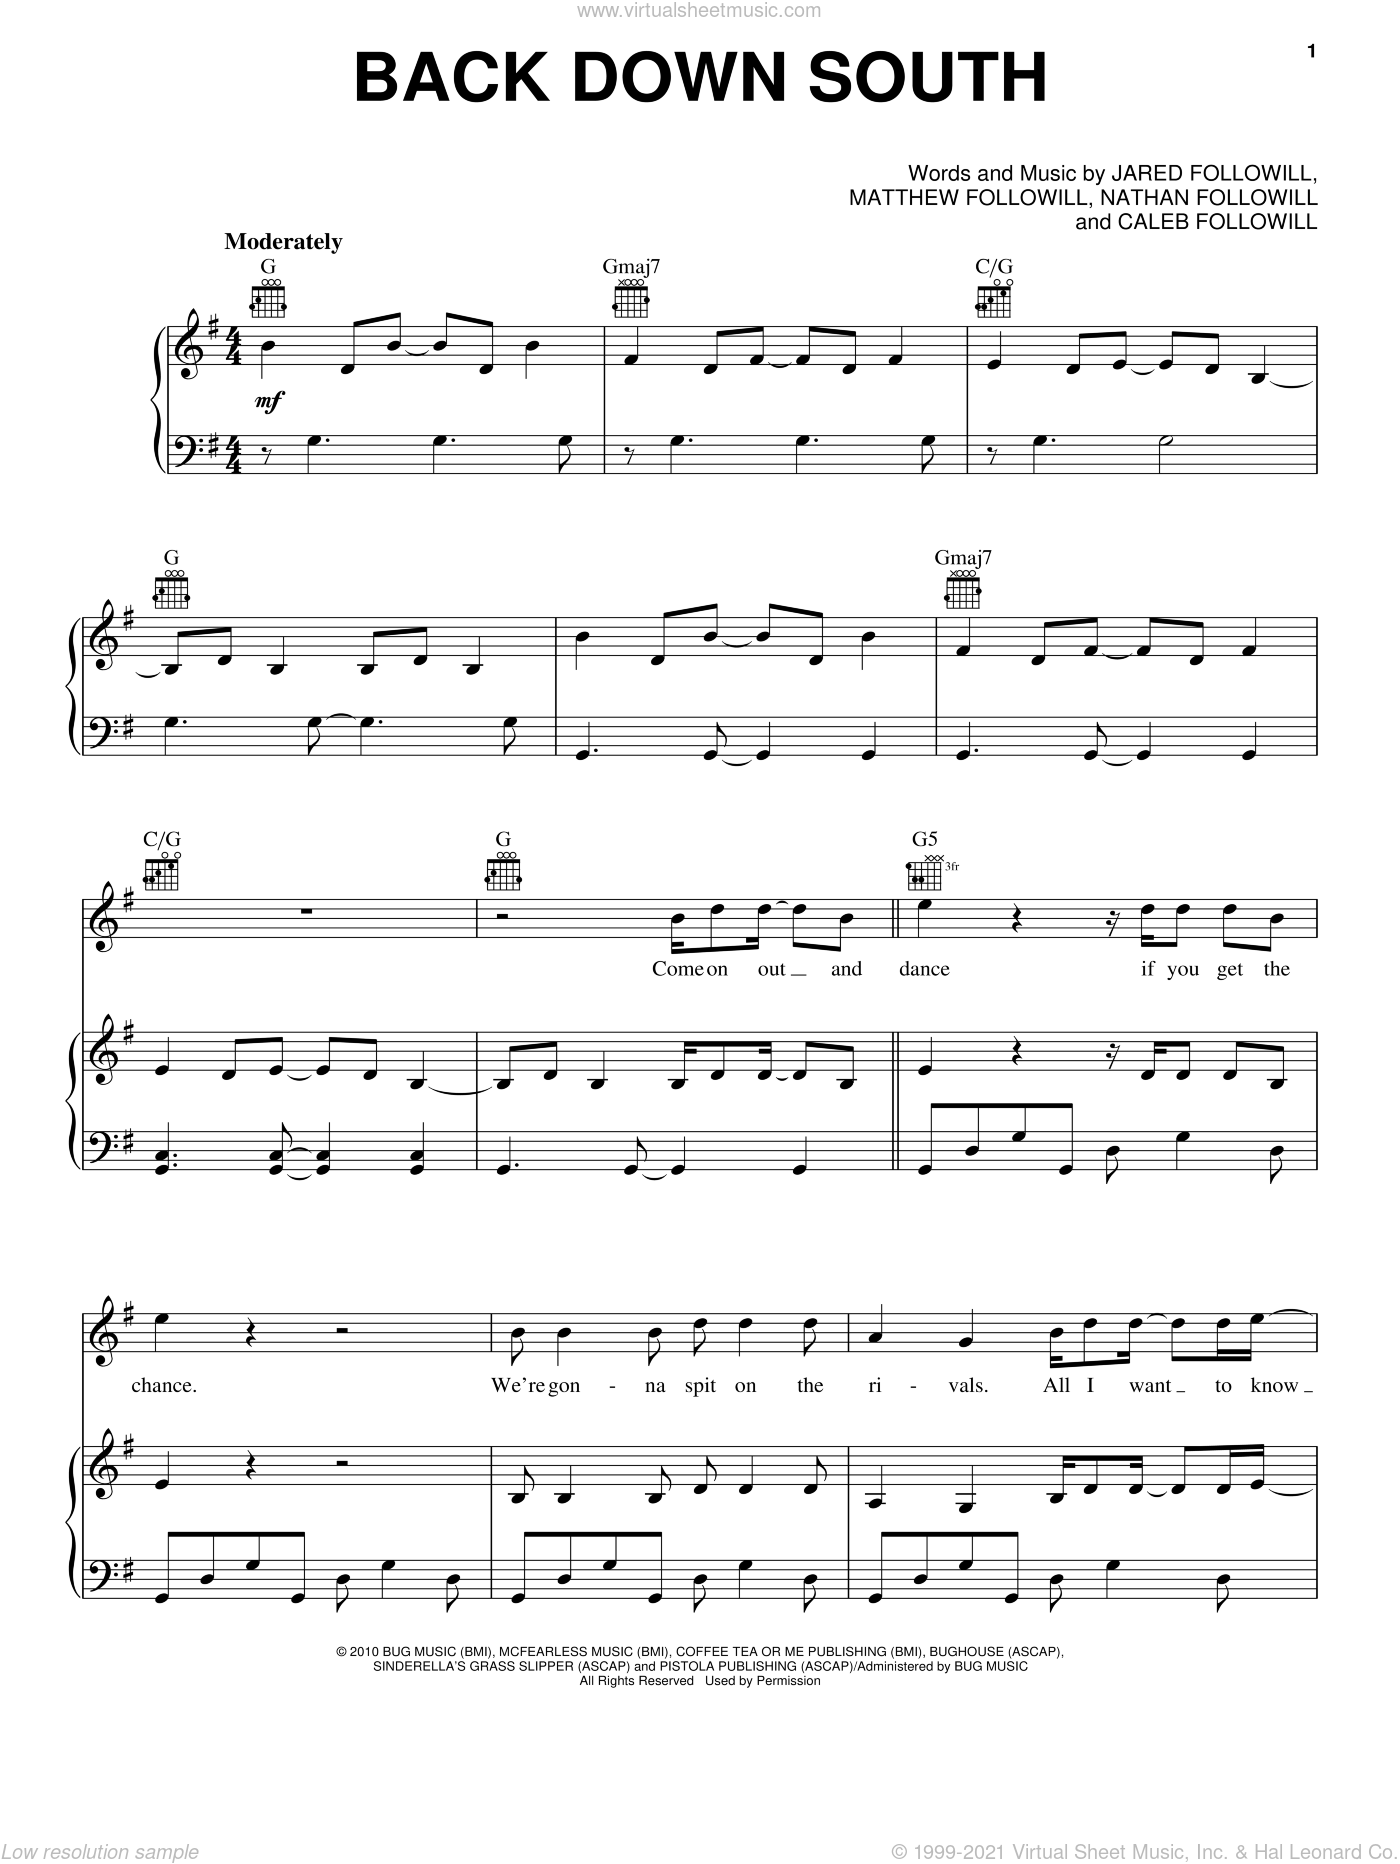 Back Down South sheet music for voice, piano or guitar by Kings Of Leon, Caleb Followill, Jared Followill, Matthew Followill and Nathan Followill, intermediate skill level